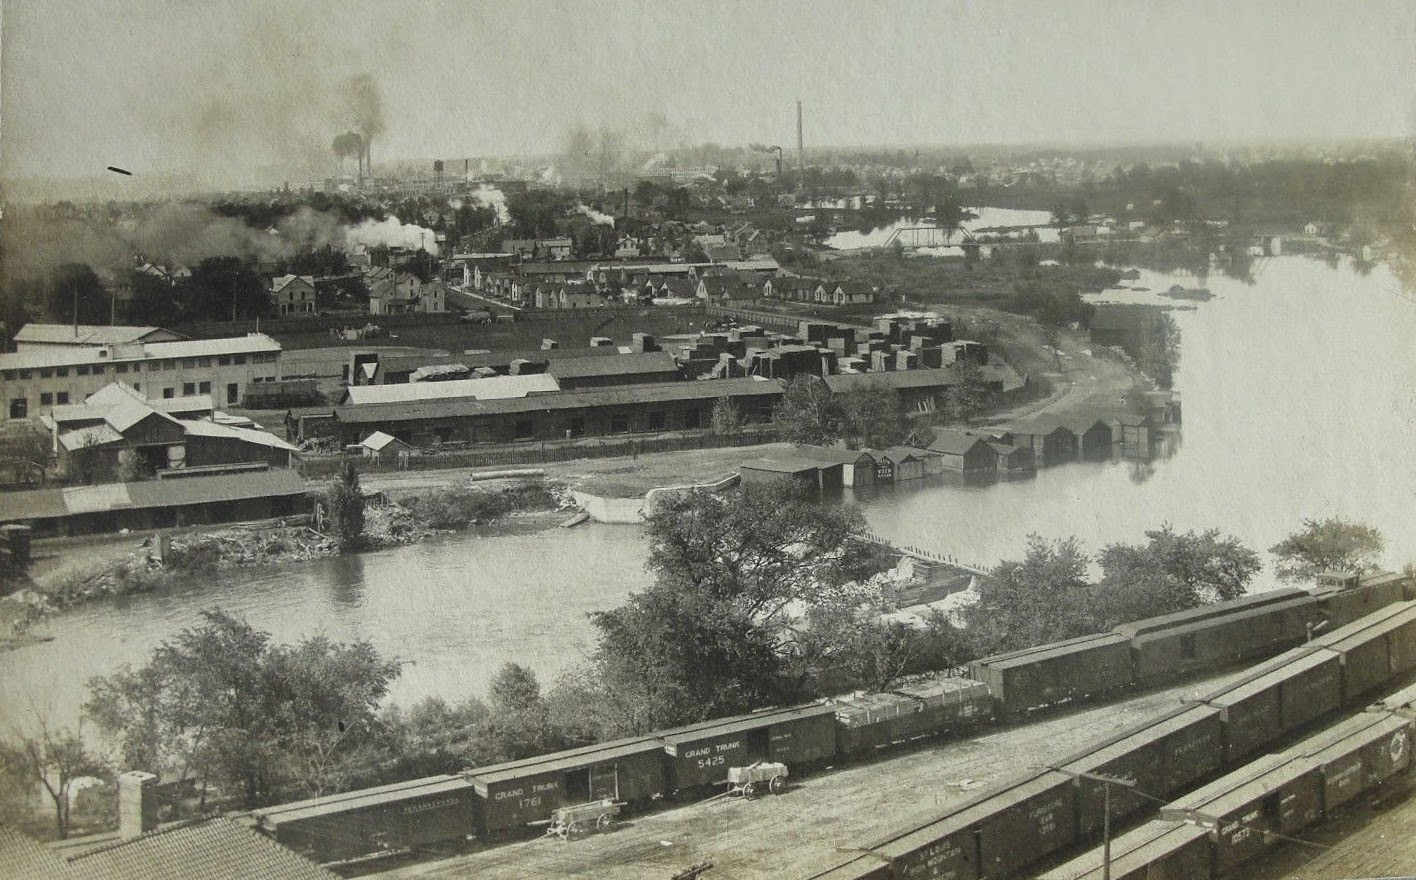 Flint GM factory 1910